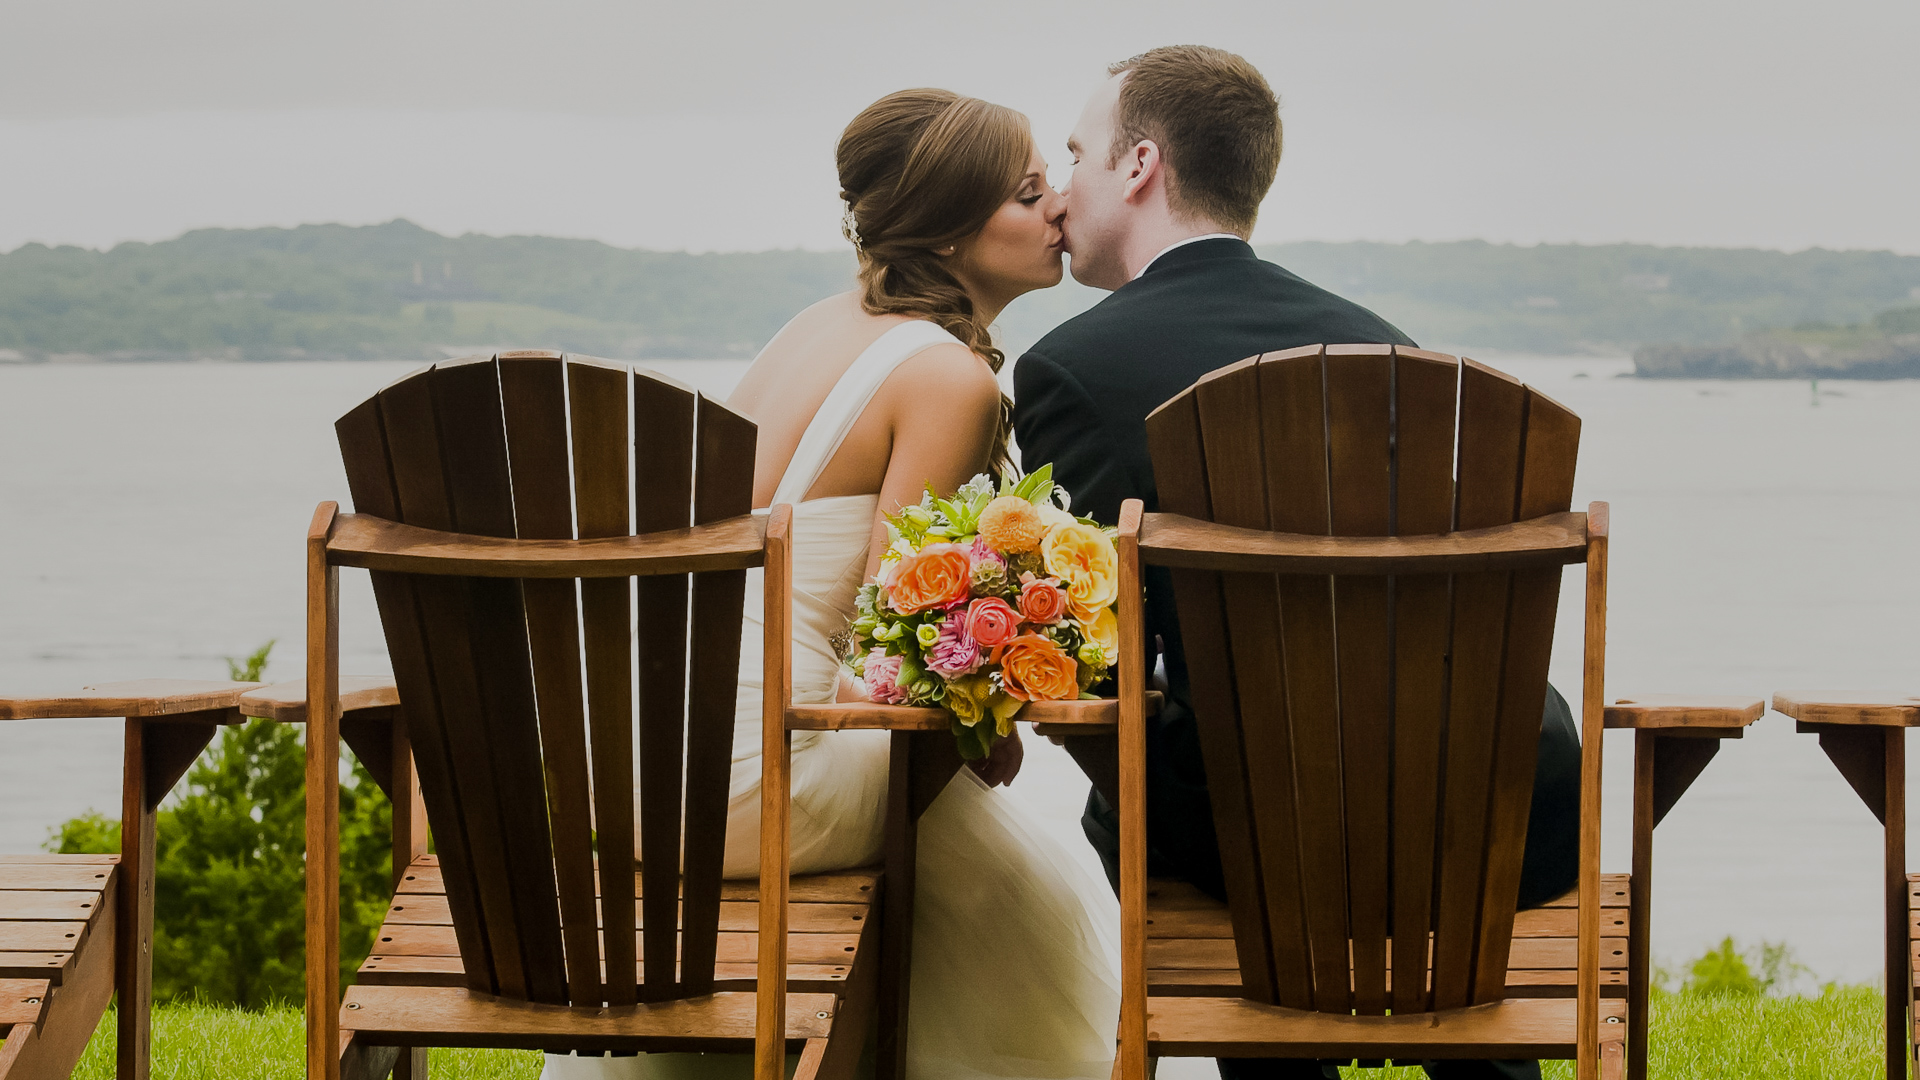 Check portfolios, pricing and availability for wedding photographers in Boston